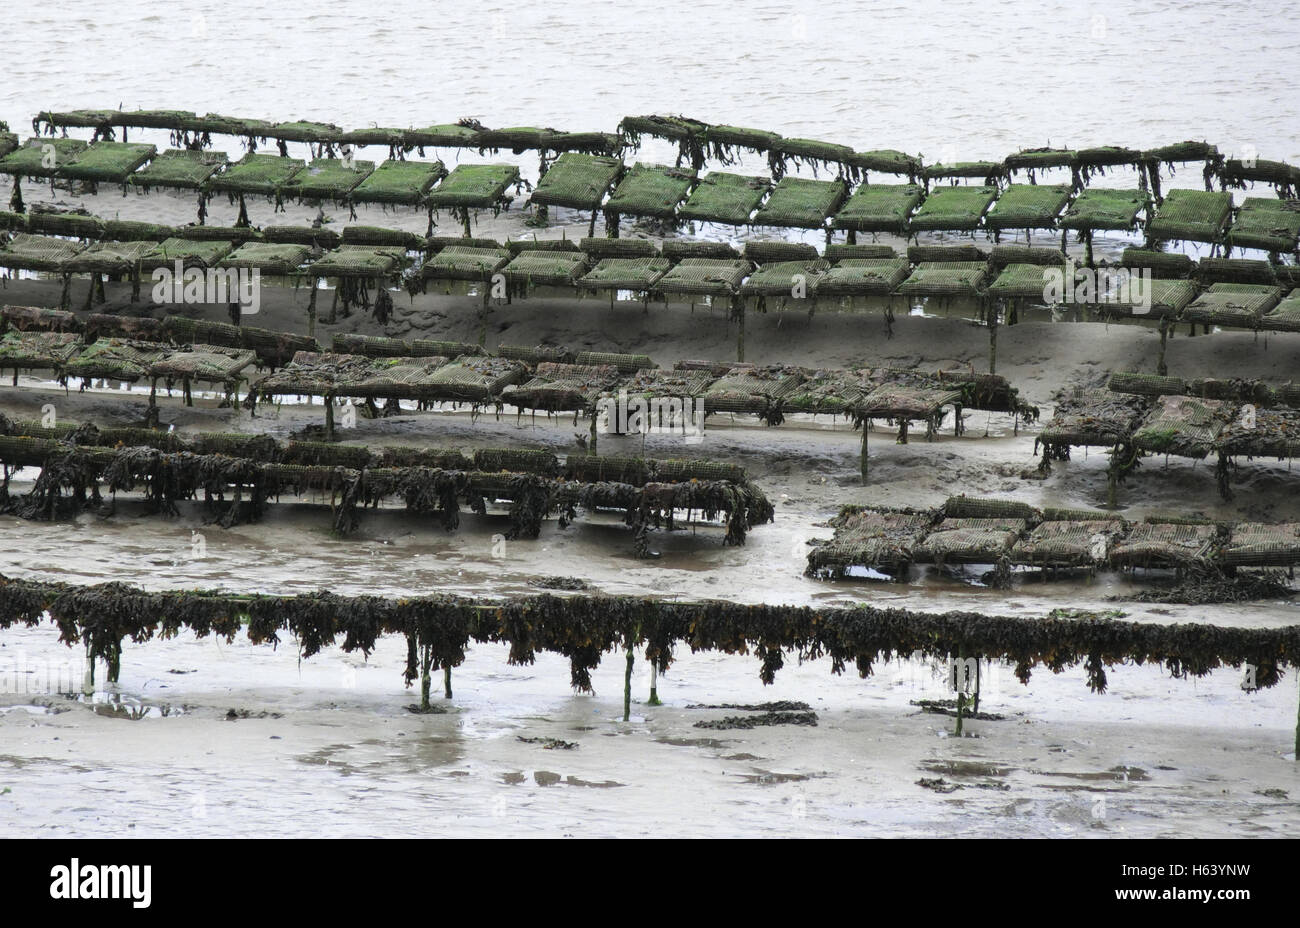 Oyster Farming in the Camel Estuary, Cornwall, England, UK Stock Photo